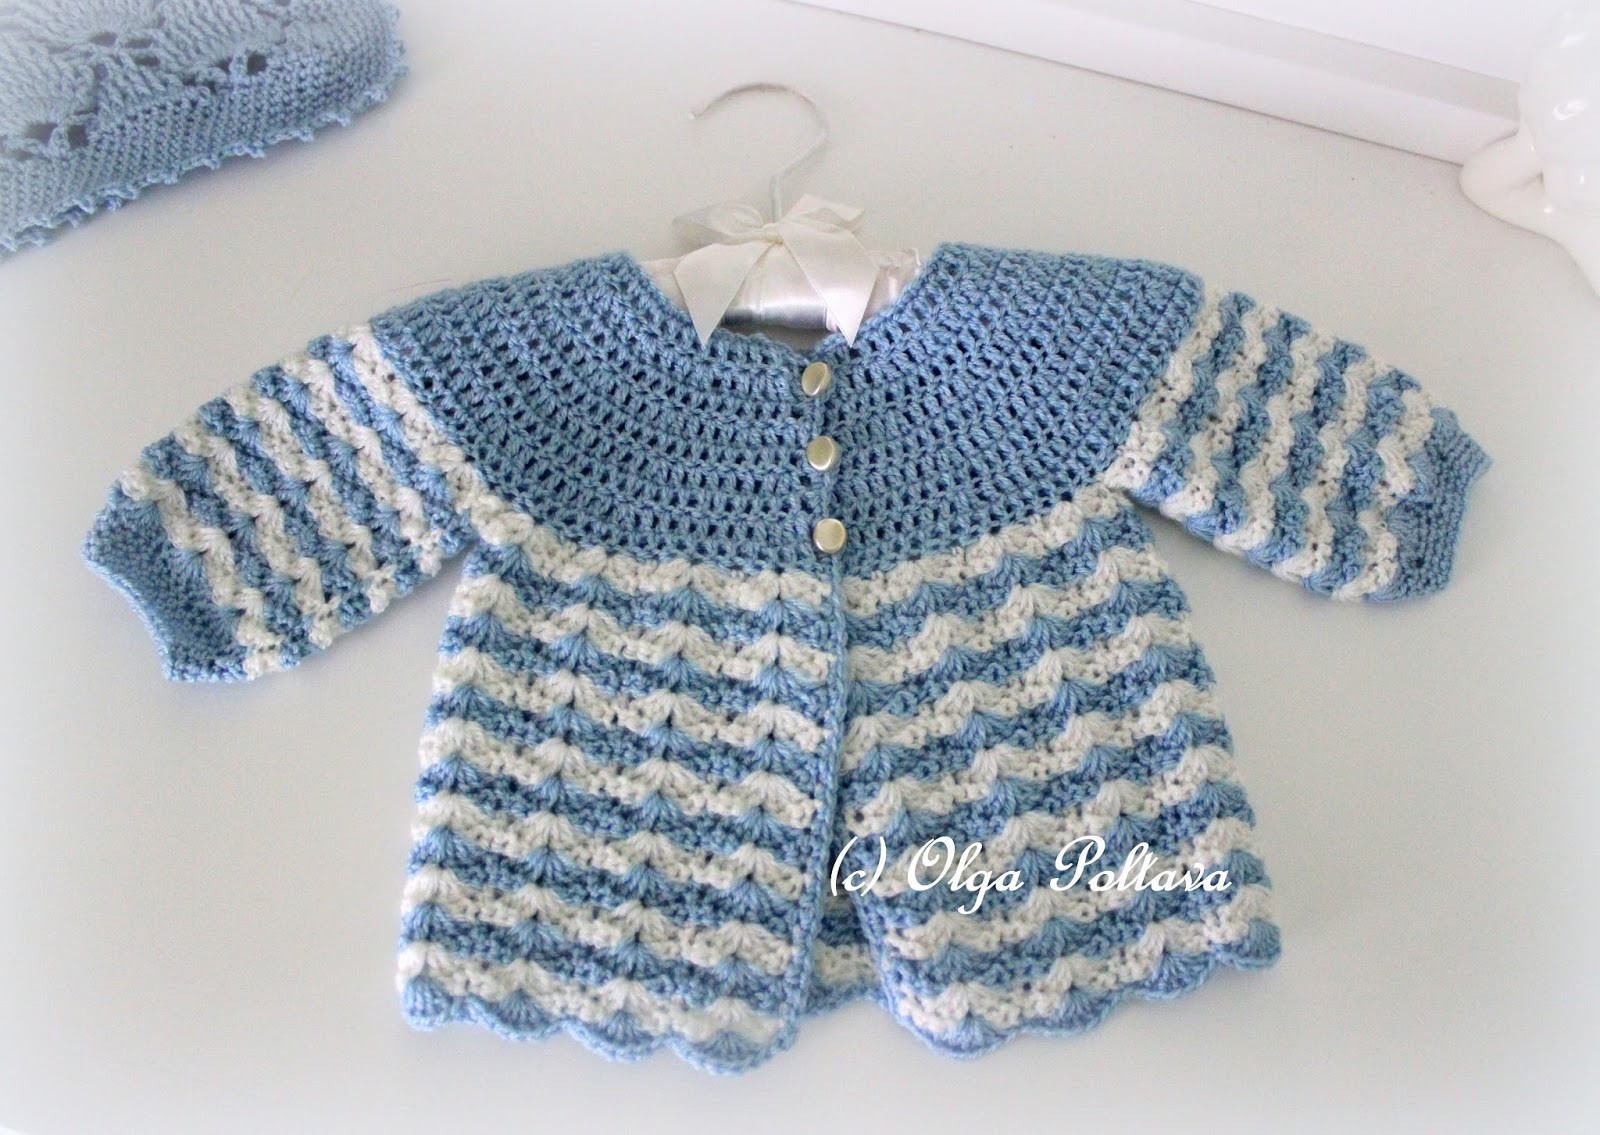 Crochet Baby Sweater Best Of Lacy Crochet Newborn Baby Crochet Sweater Of Charming 44 Images Crochet Baby Sweater